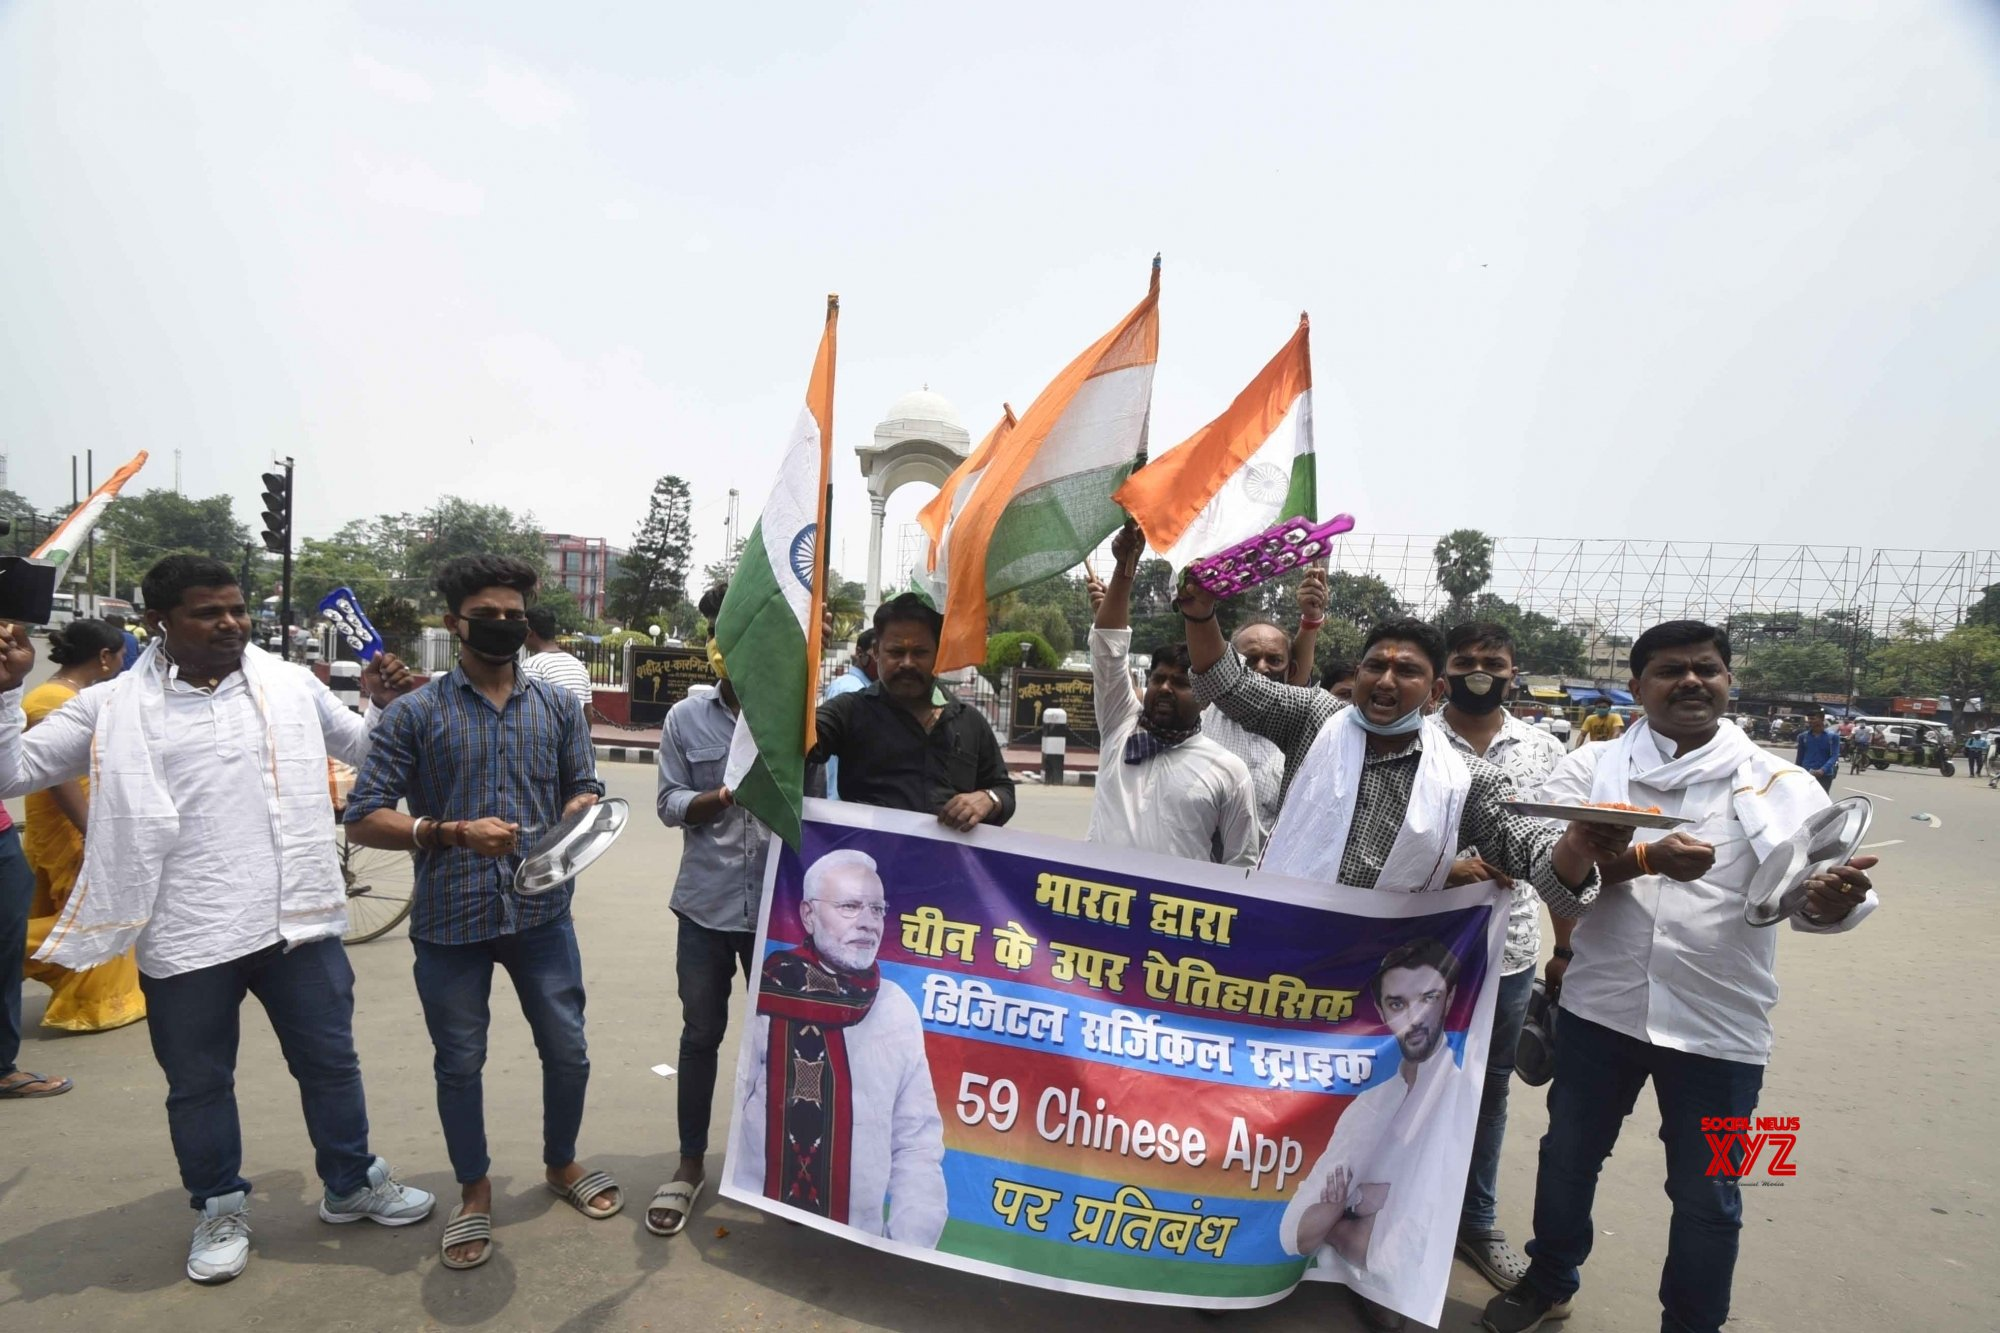 Patna: LJP celebrates Govt's decision to ban 59 Chinese apps over national security concerns #Gallery